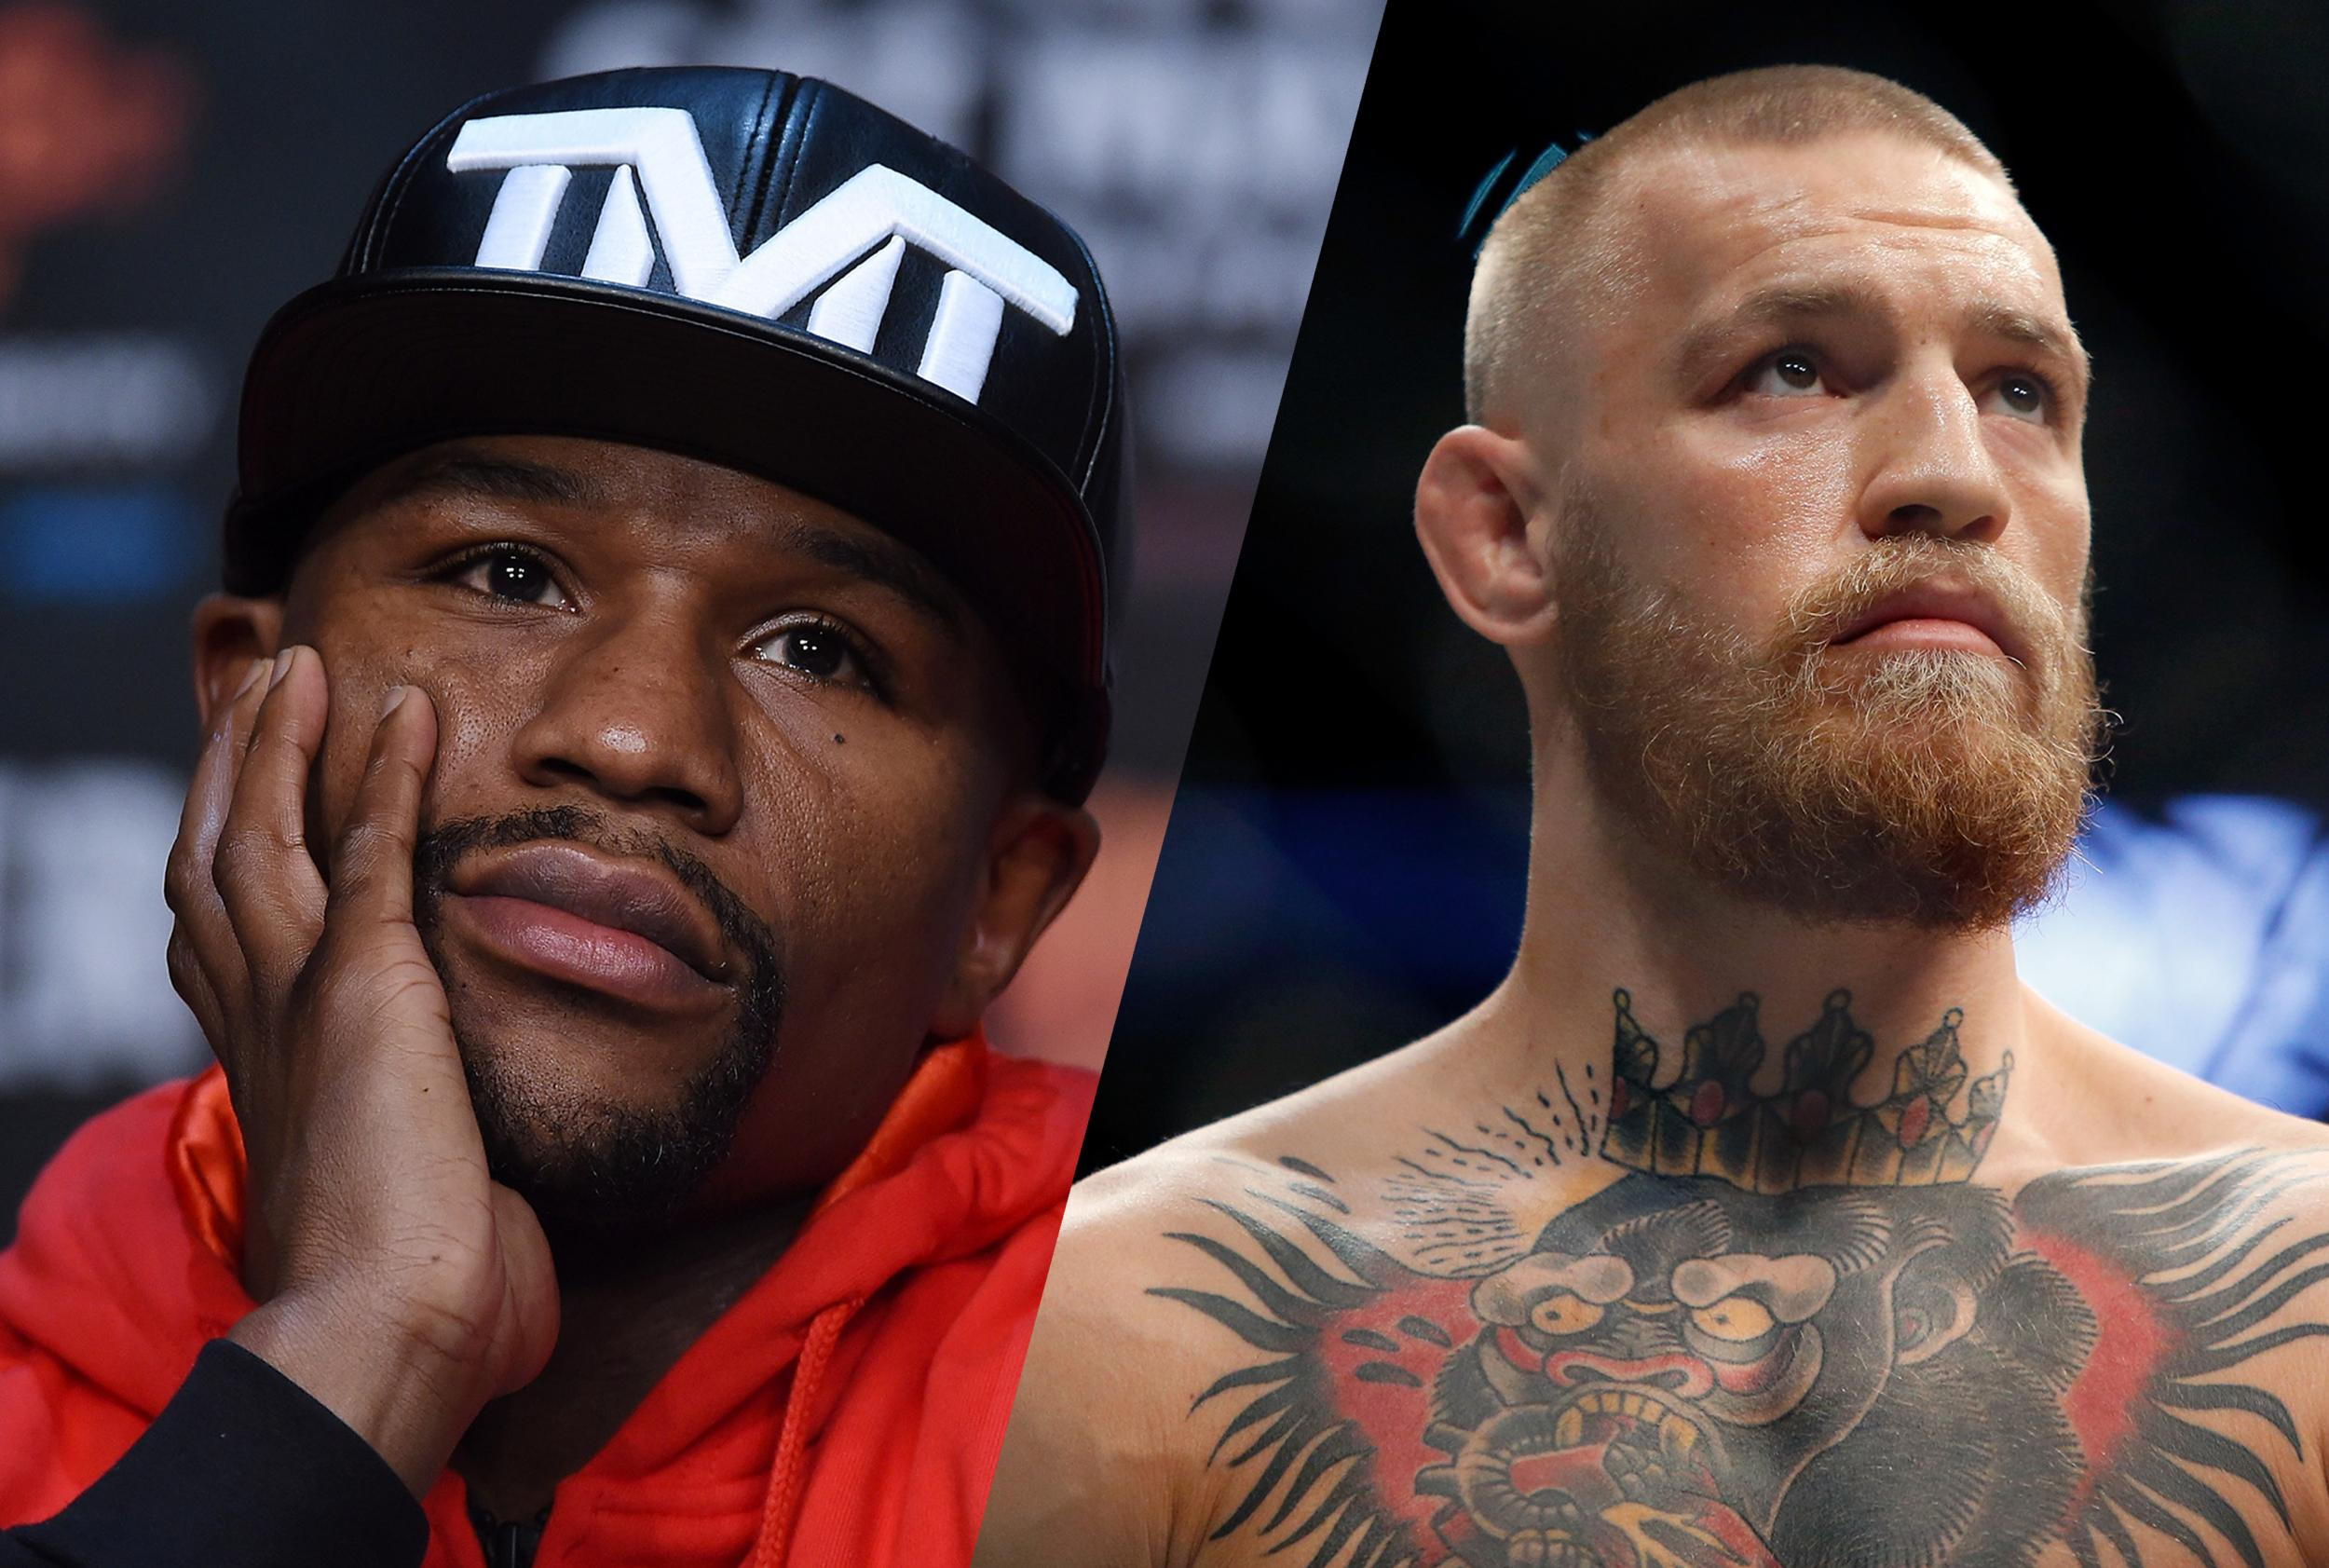 https://static.independent.co.uk/s3fs-public/thumbnails/image/2016/09/21/11/mayweather-mcgregor.jpg